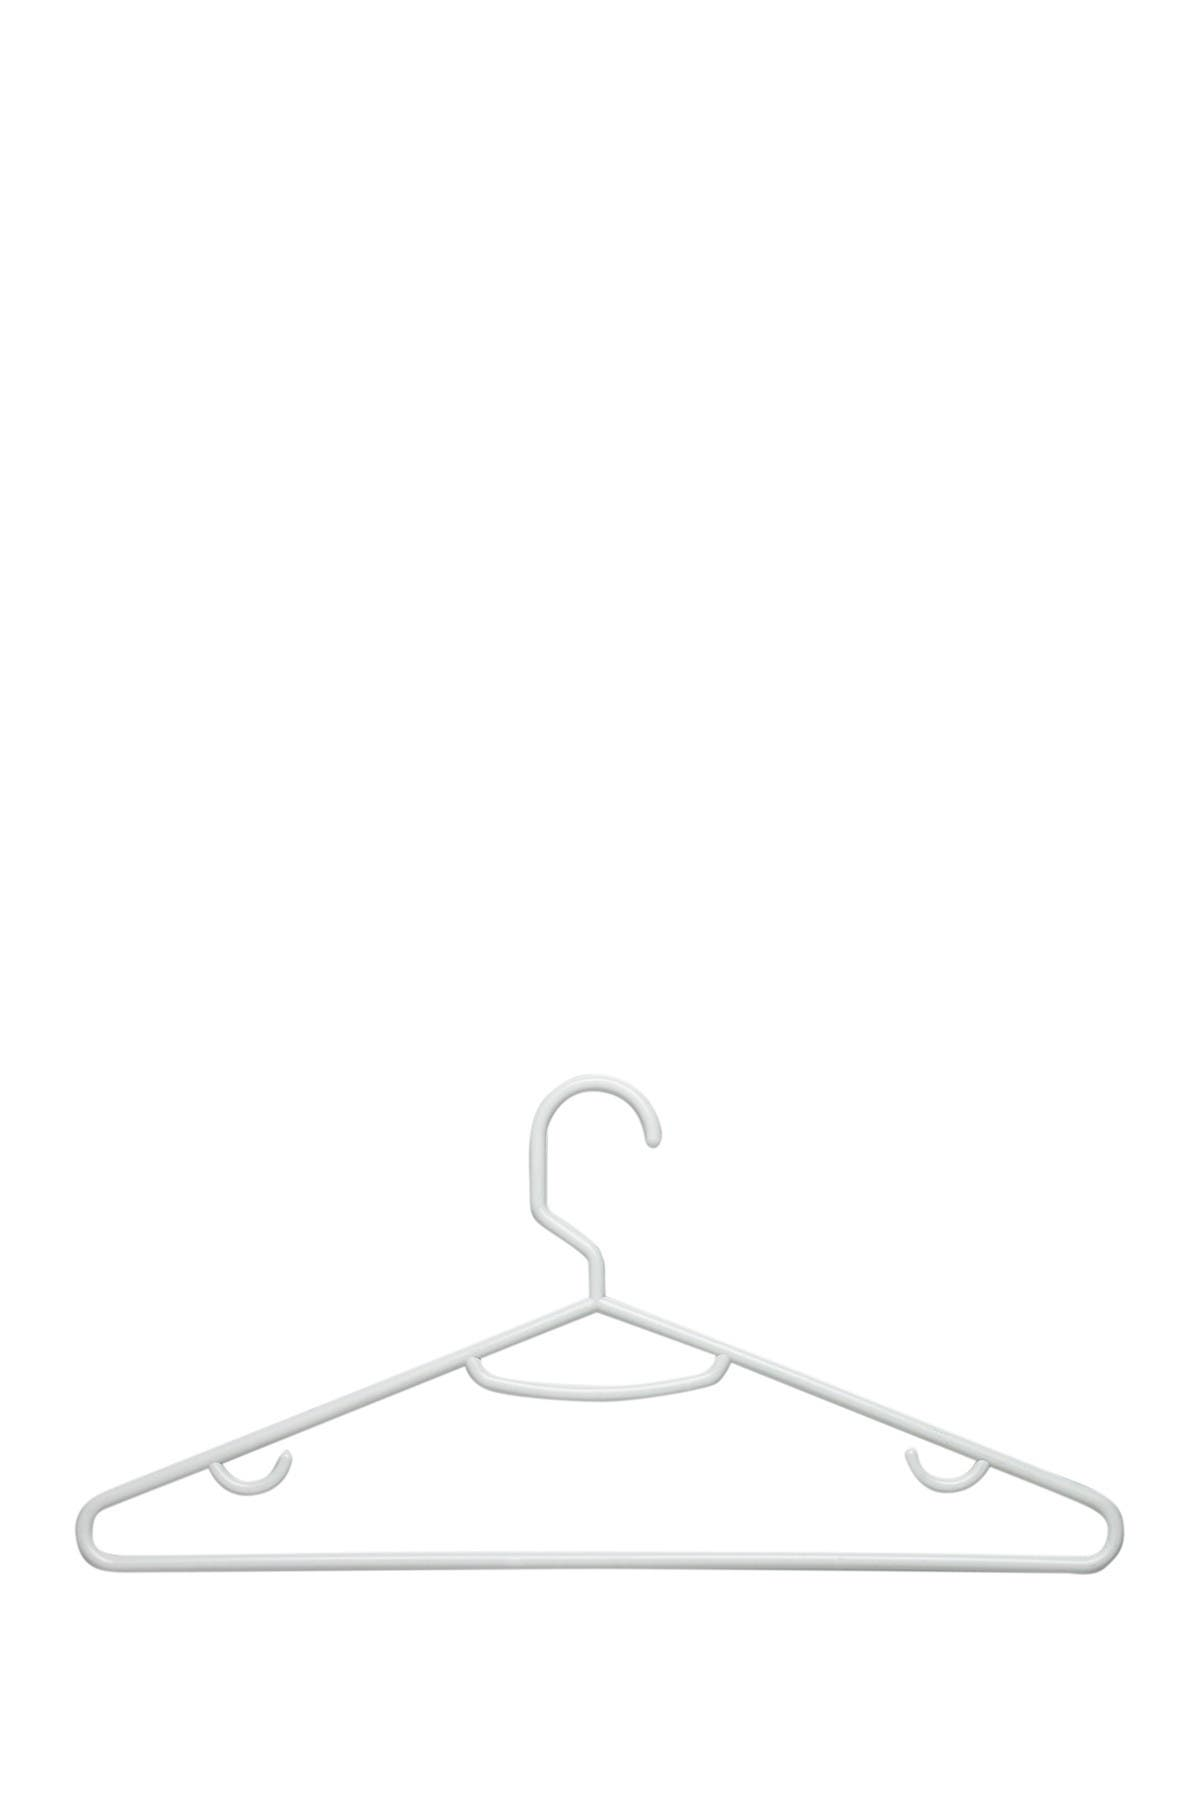 Image of Honey-Can-Do Recycled White Hangers - Pack of 60